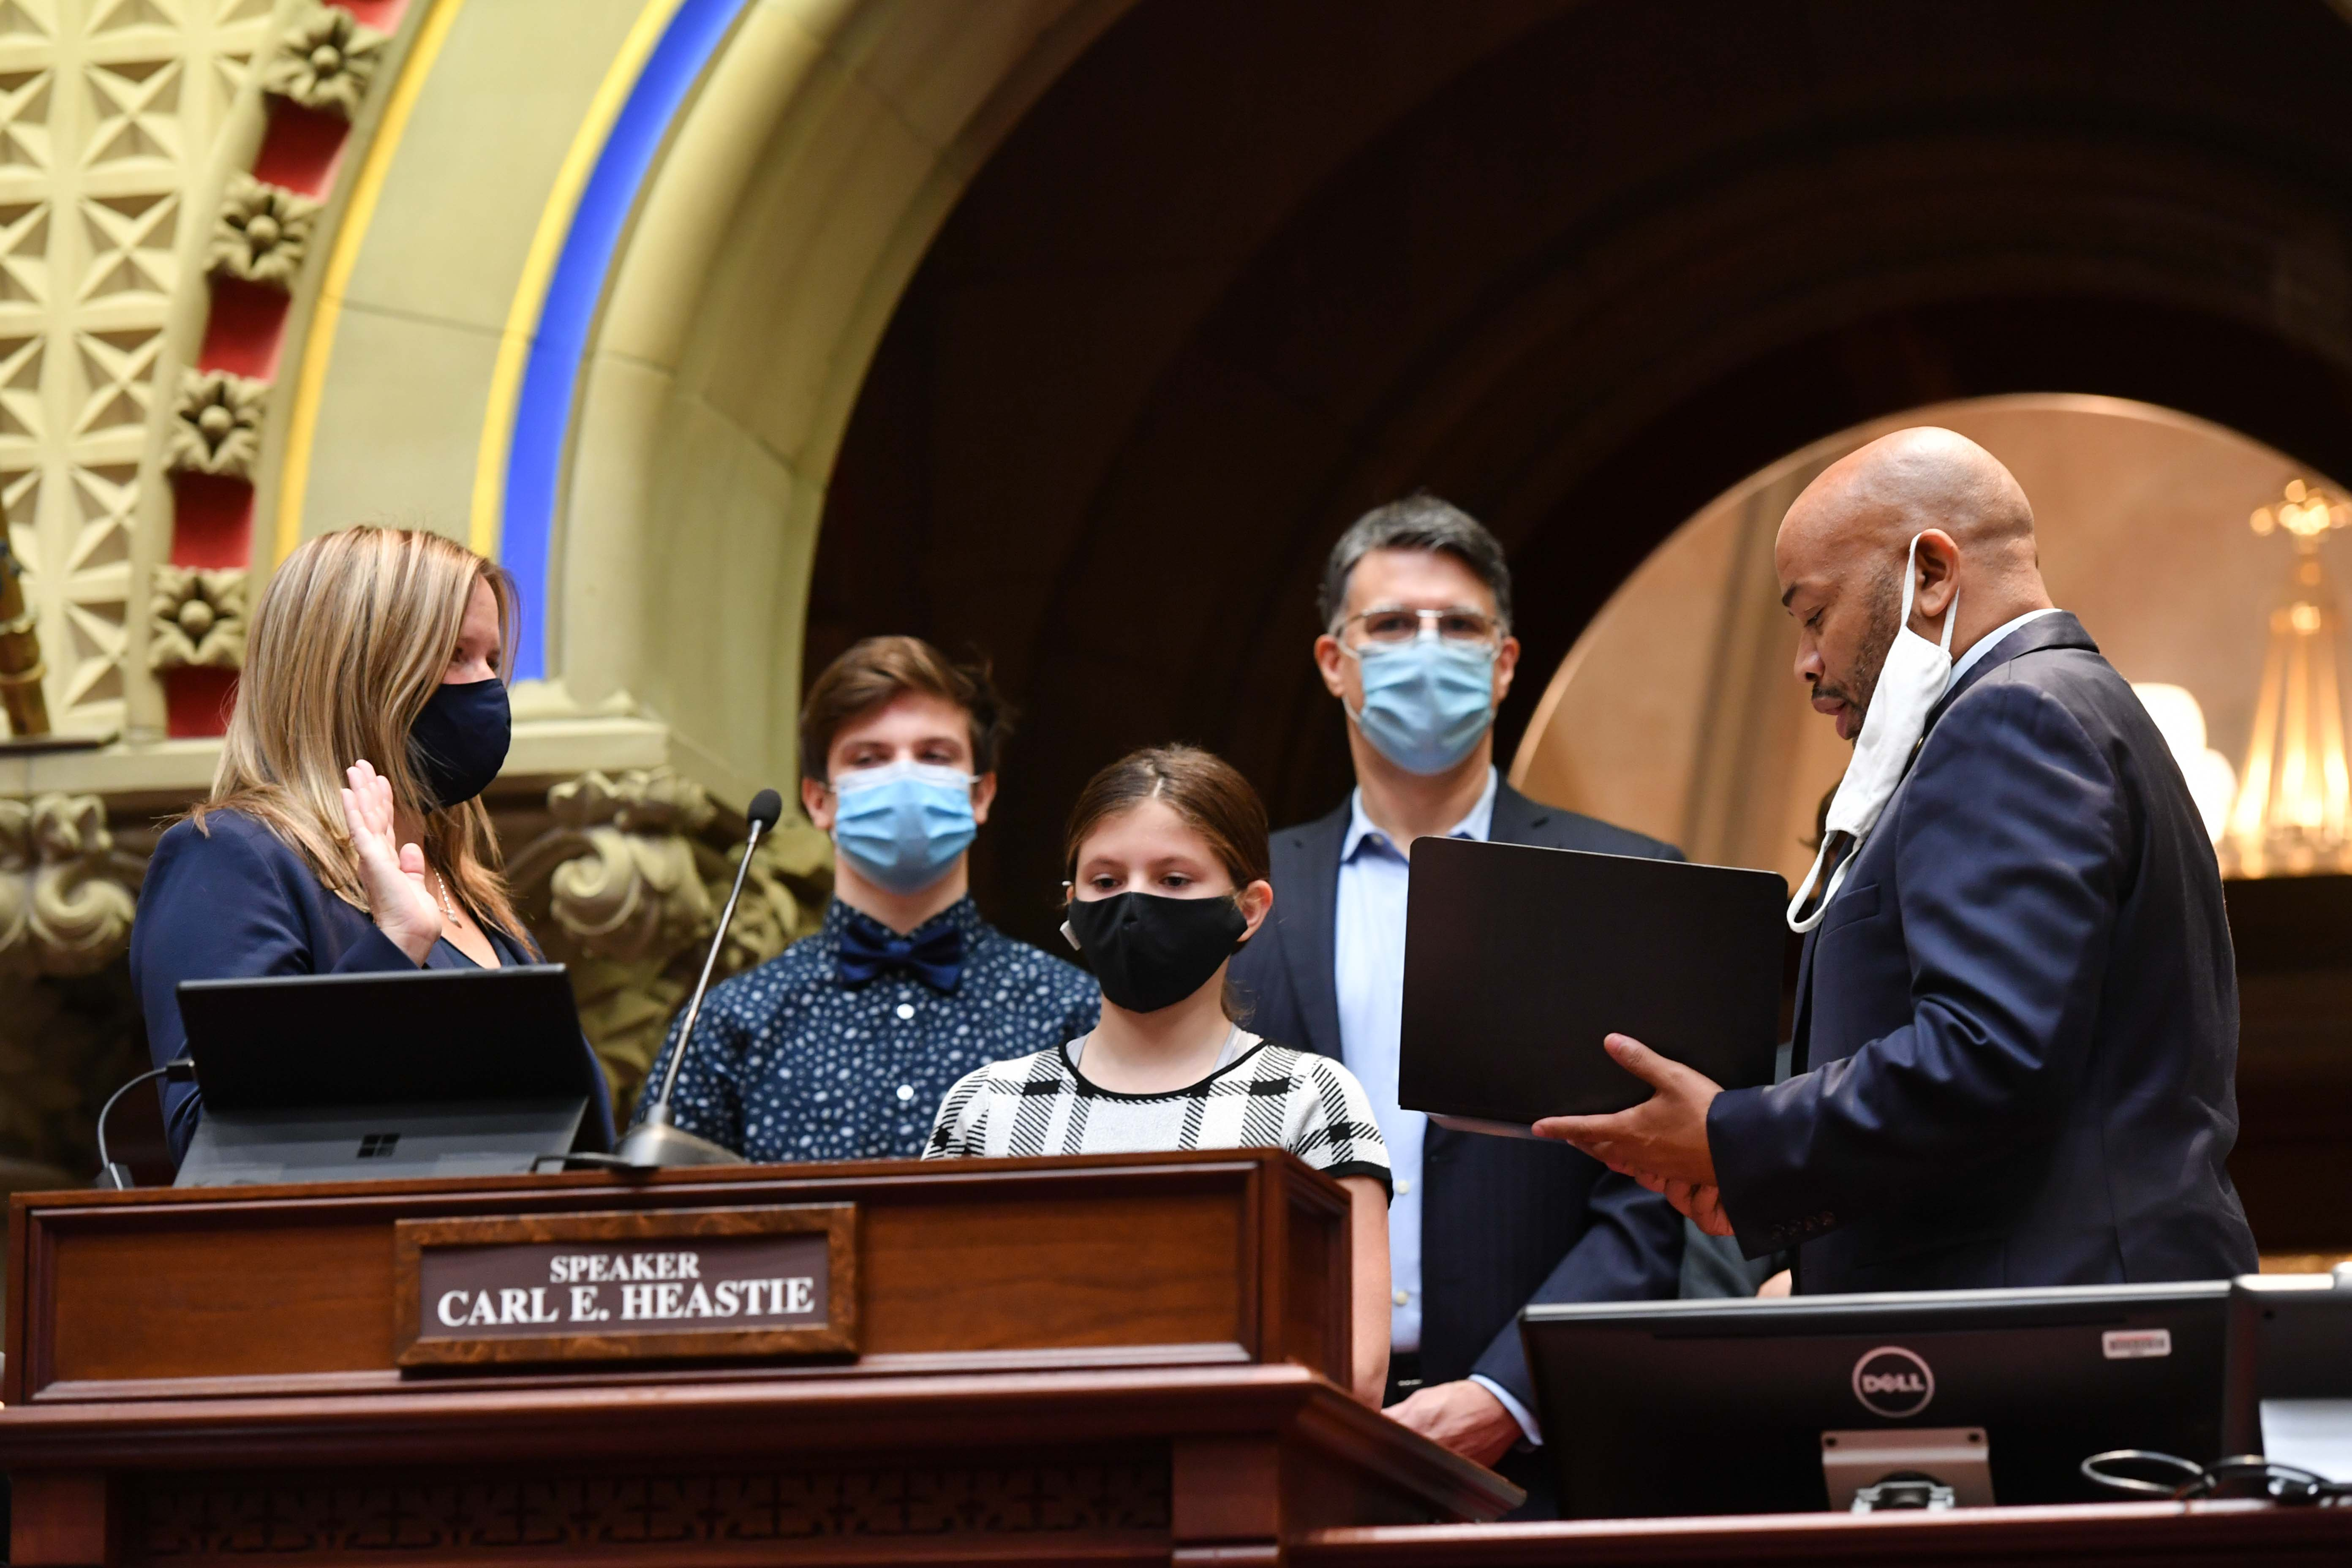 Speaker Carl Heastie swears in new Assemblymember Sarah Clark to represent the 136th AD